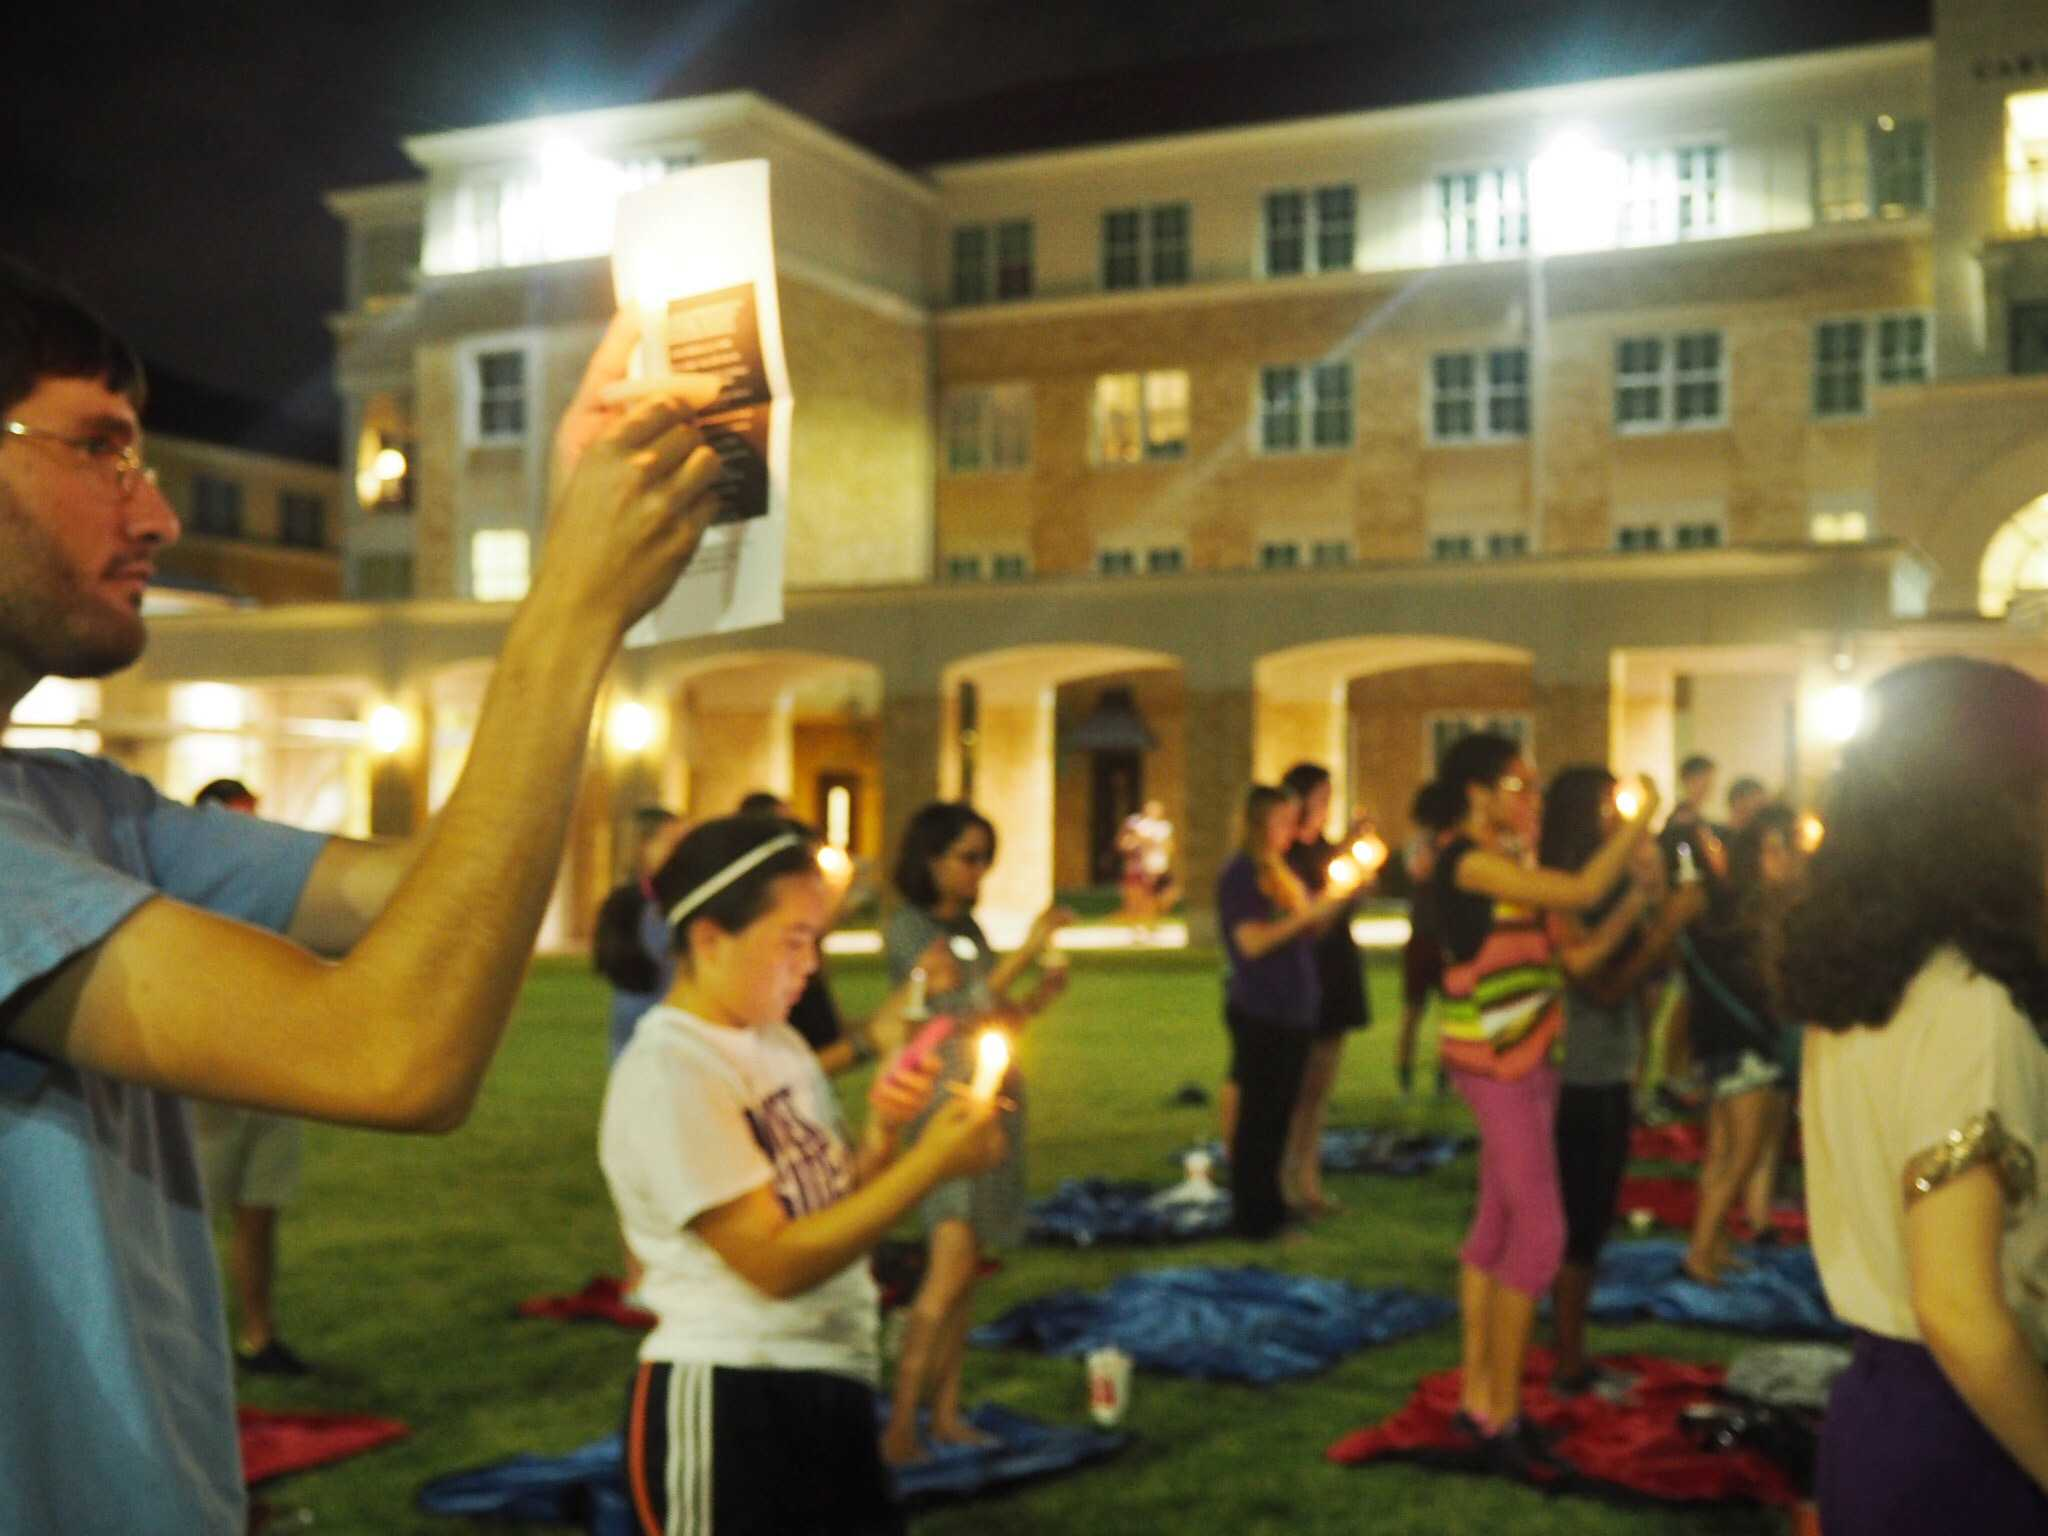 Seventy-five TCU students gathered in the Campus Commons and lit candles representing hope for those who are struggling with thoughts of suicide.